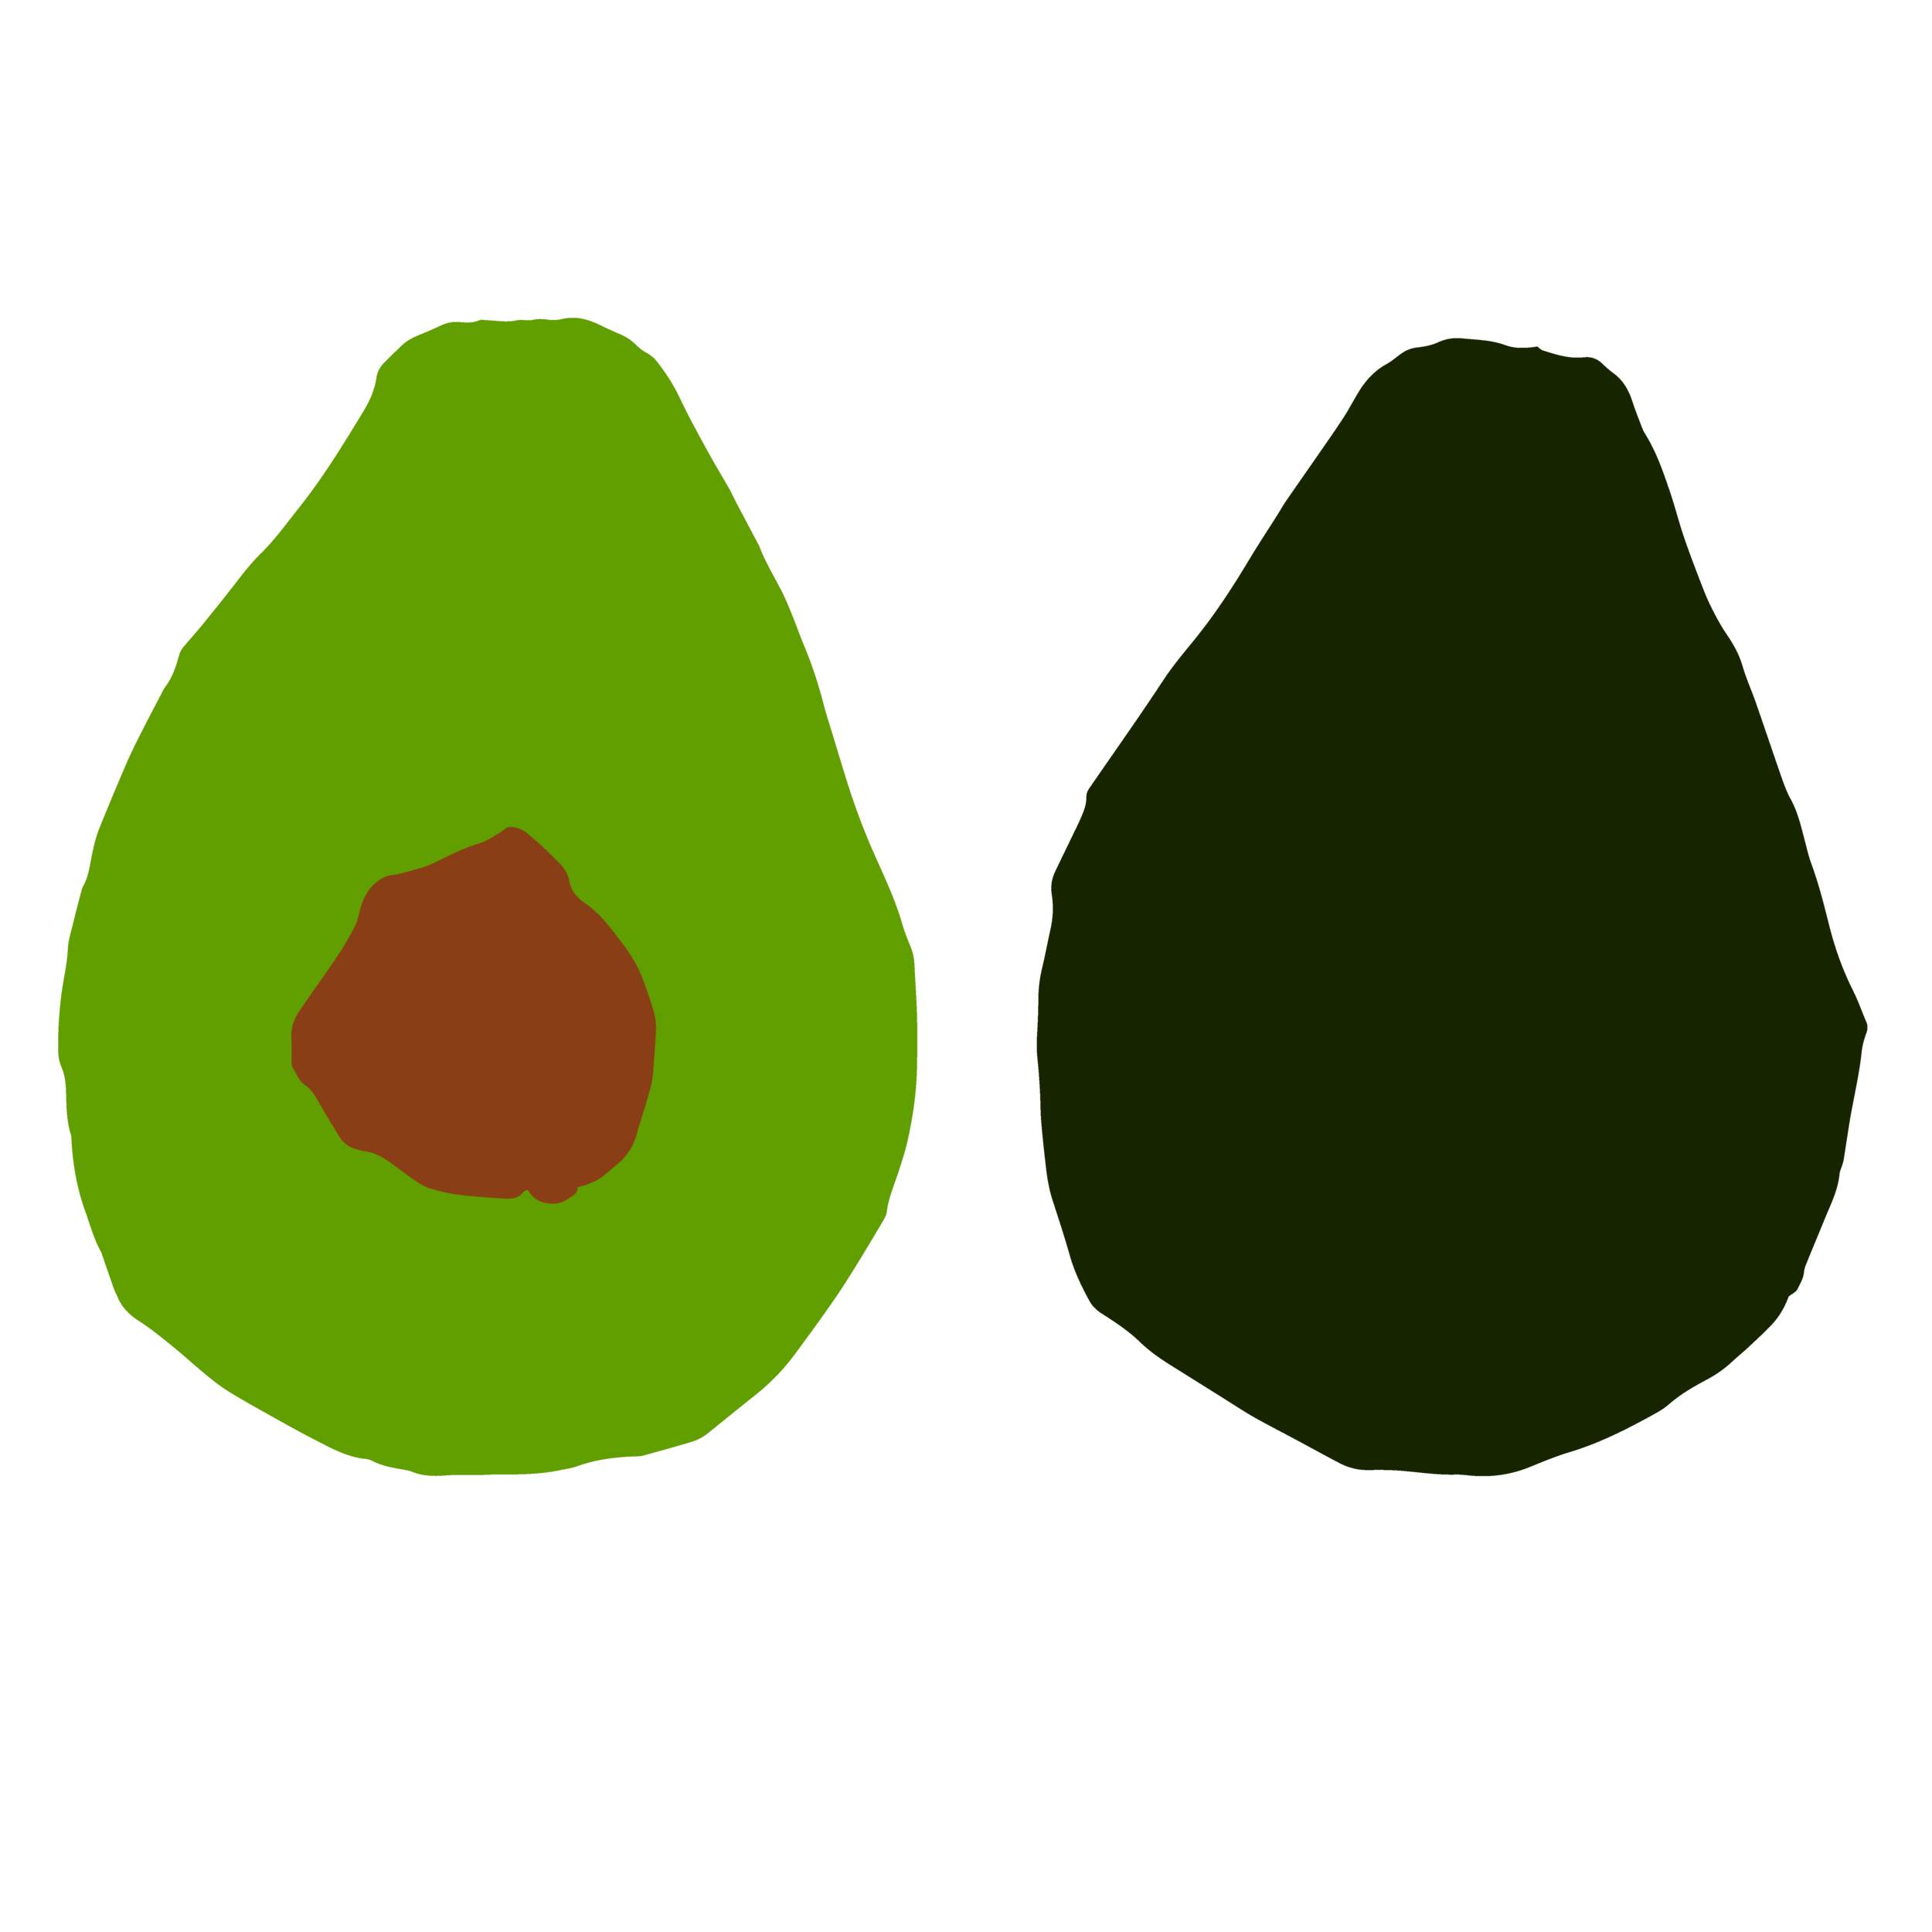 Avo - Brown Pit - Dark Green Shell.png